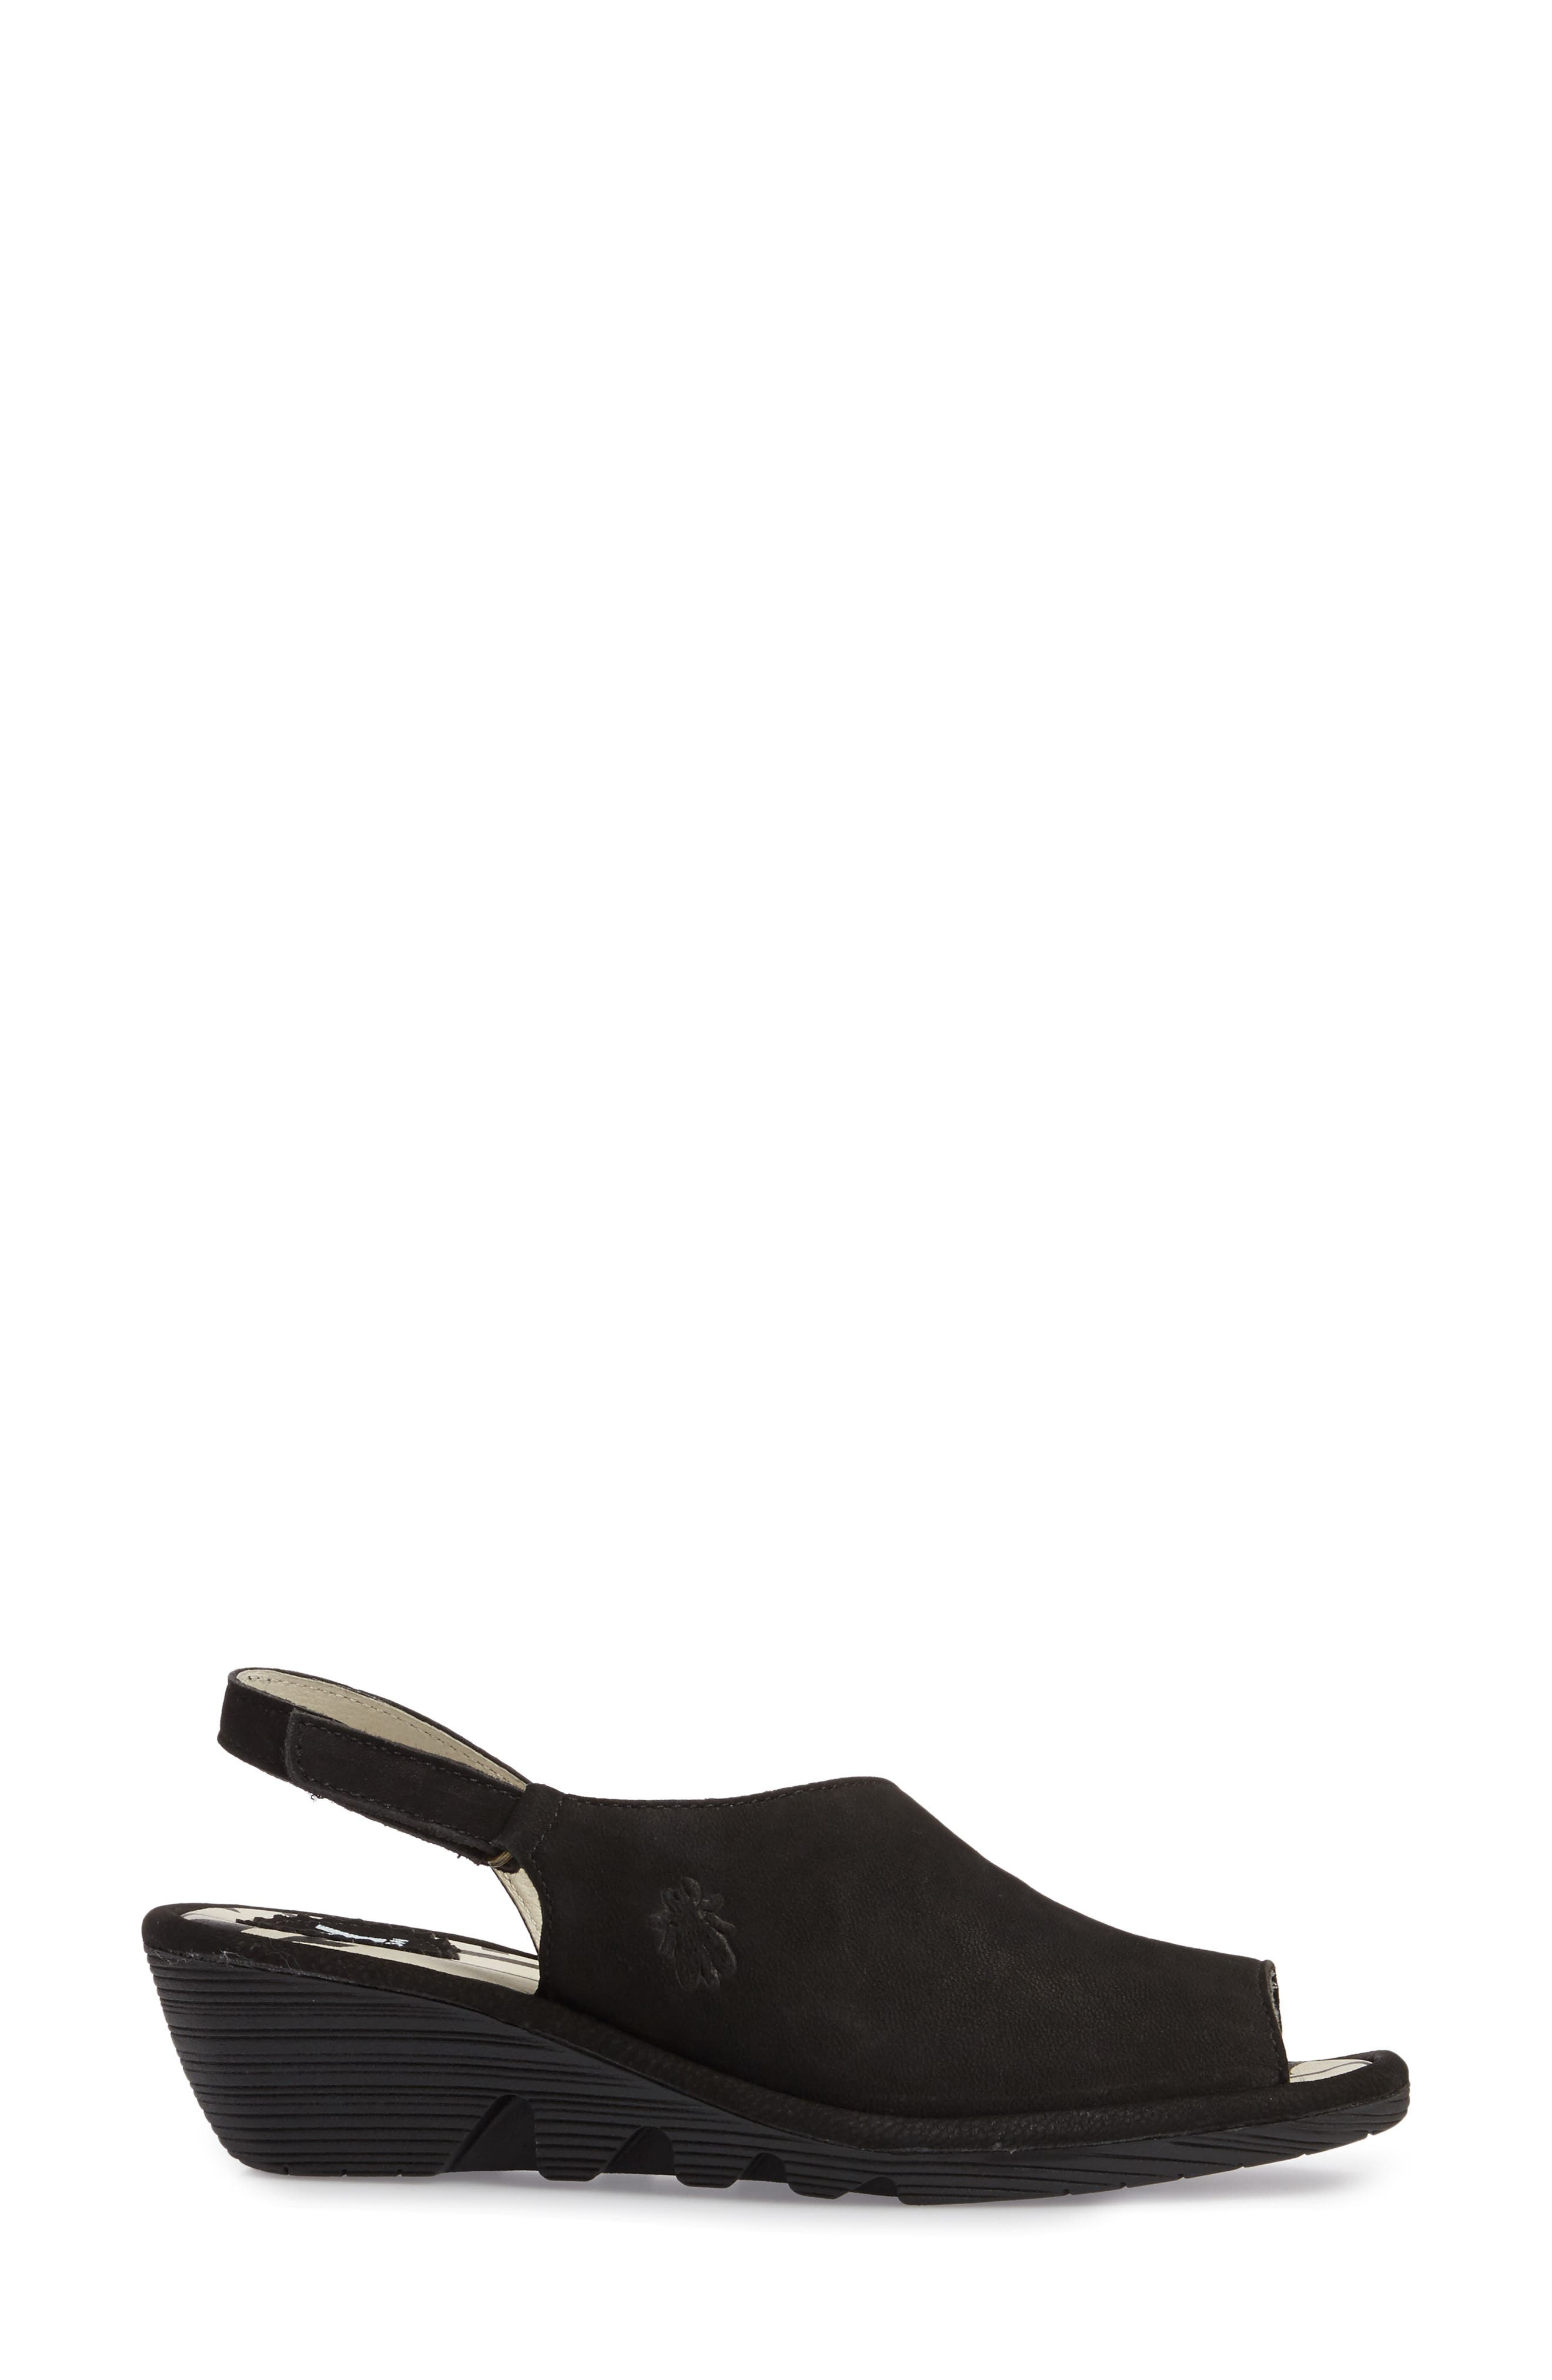 FLY LONDON, Palp Wedge Sandal, Alternate thumbnail 3, color, BLACK CUPIDO LEATHER